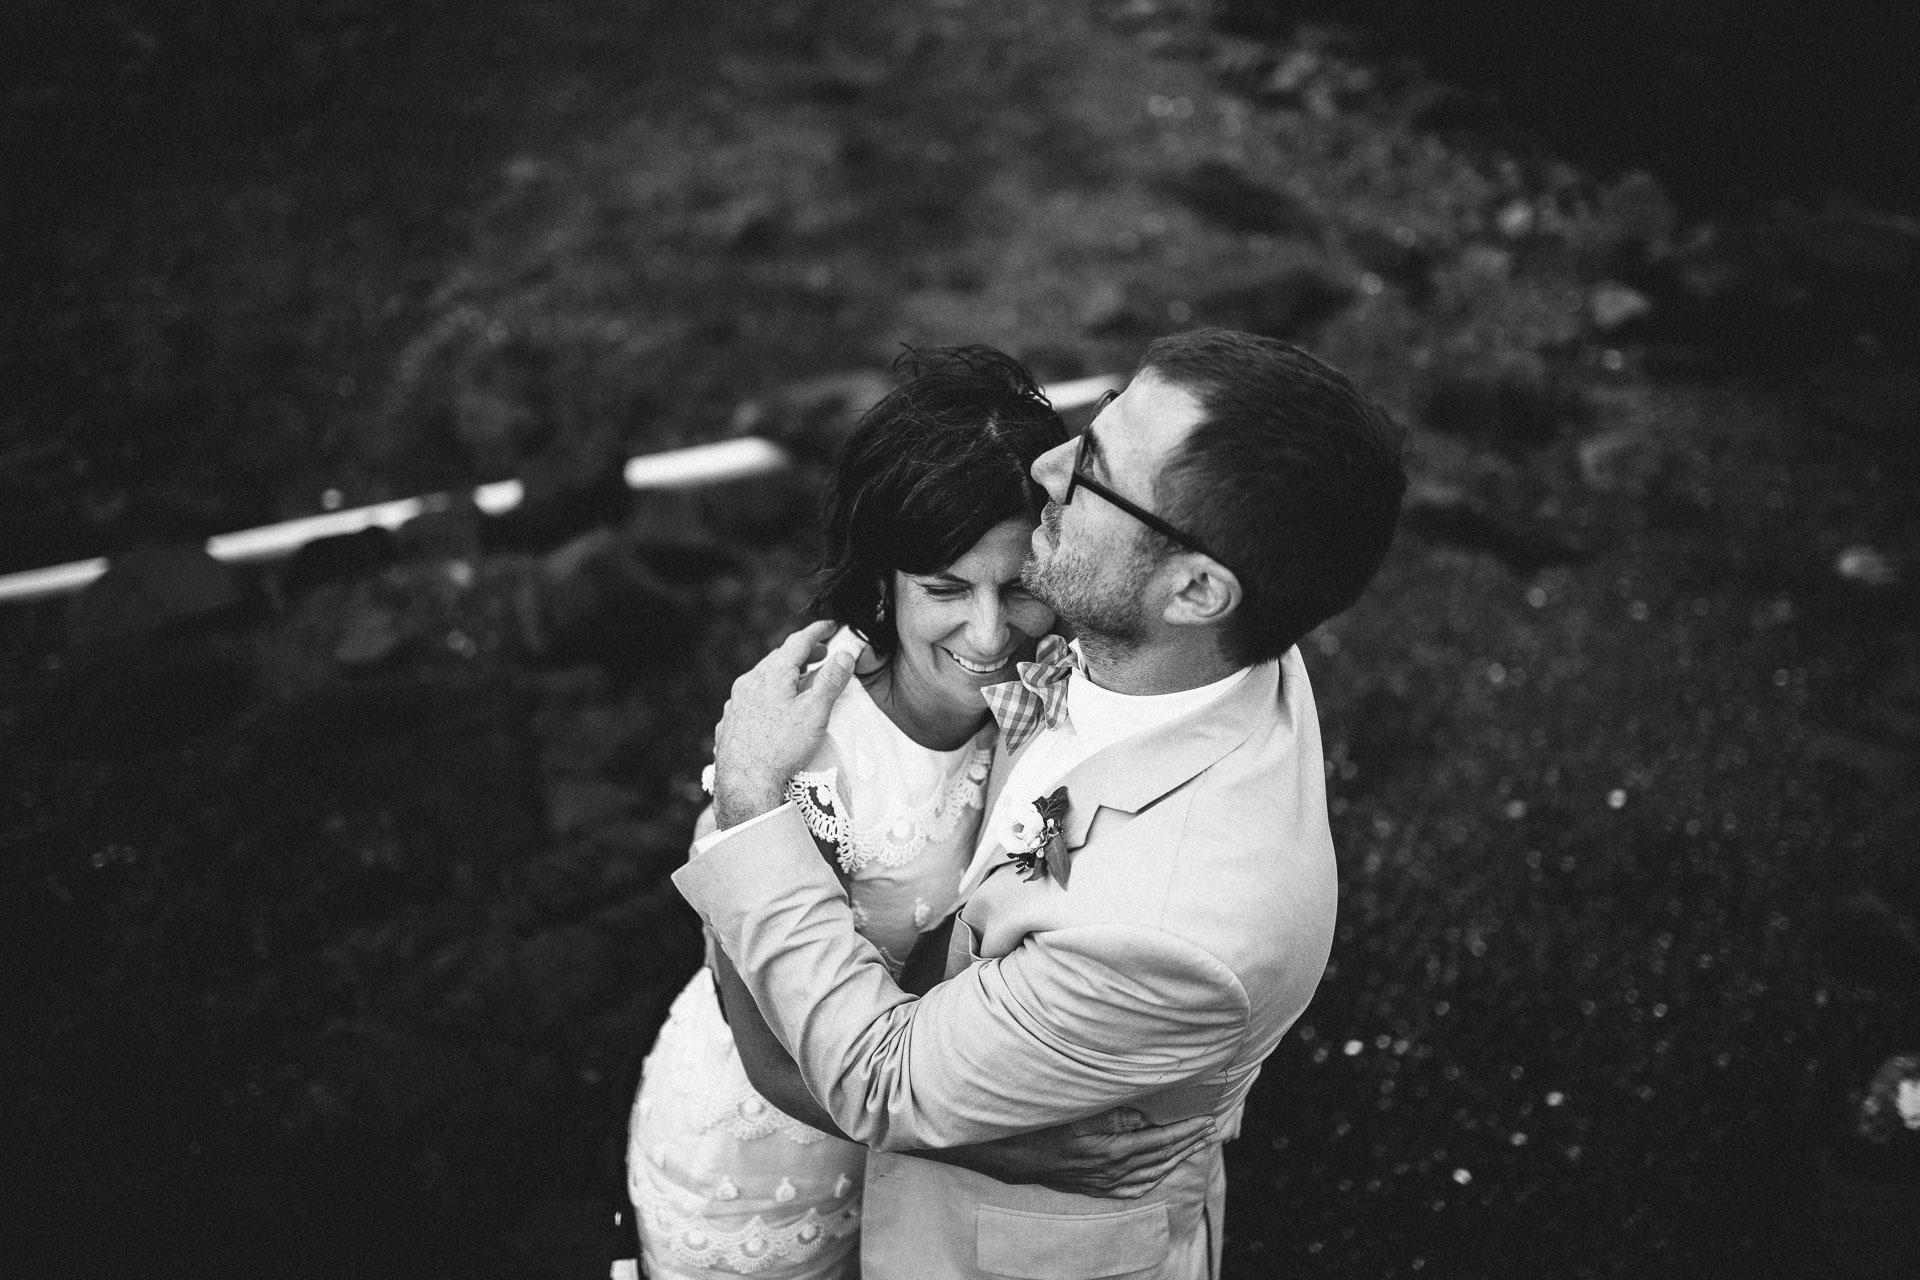 Megan_Matt_Elopement_IntimateWedding_Scotland_IsleOfSkye_JeanLaurentGaudy_113